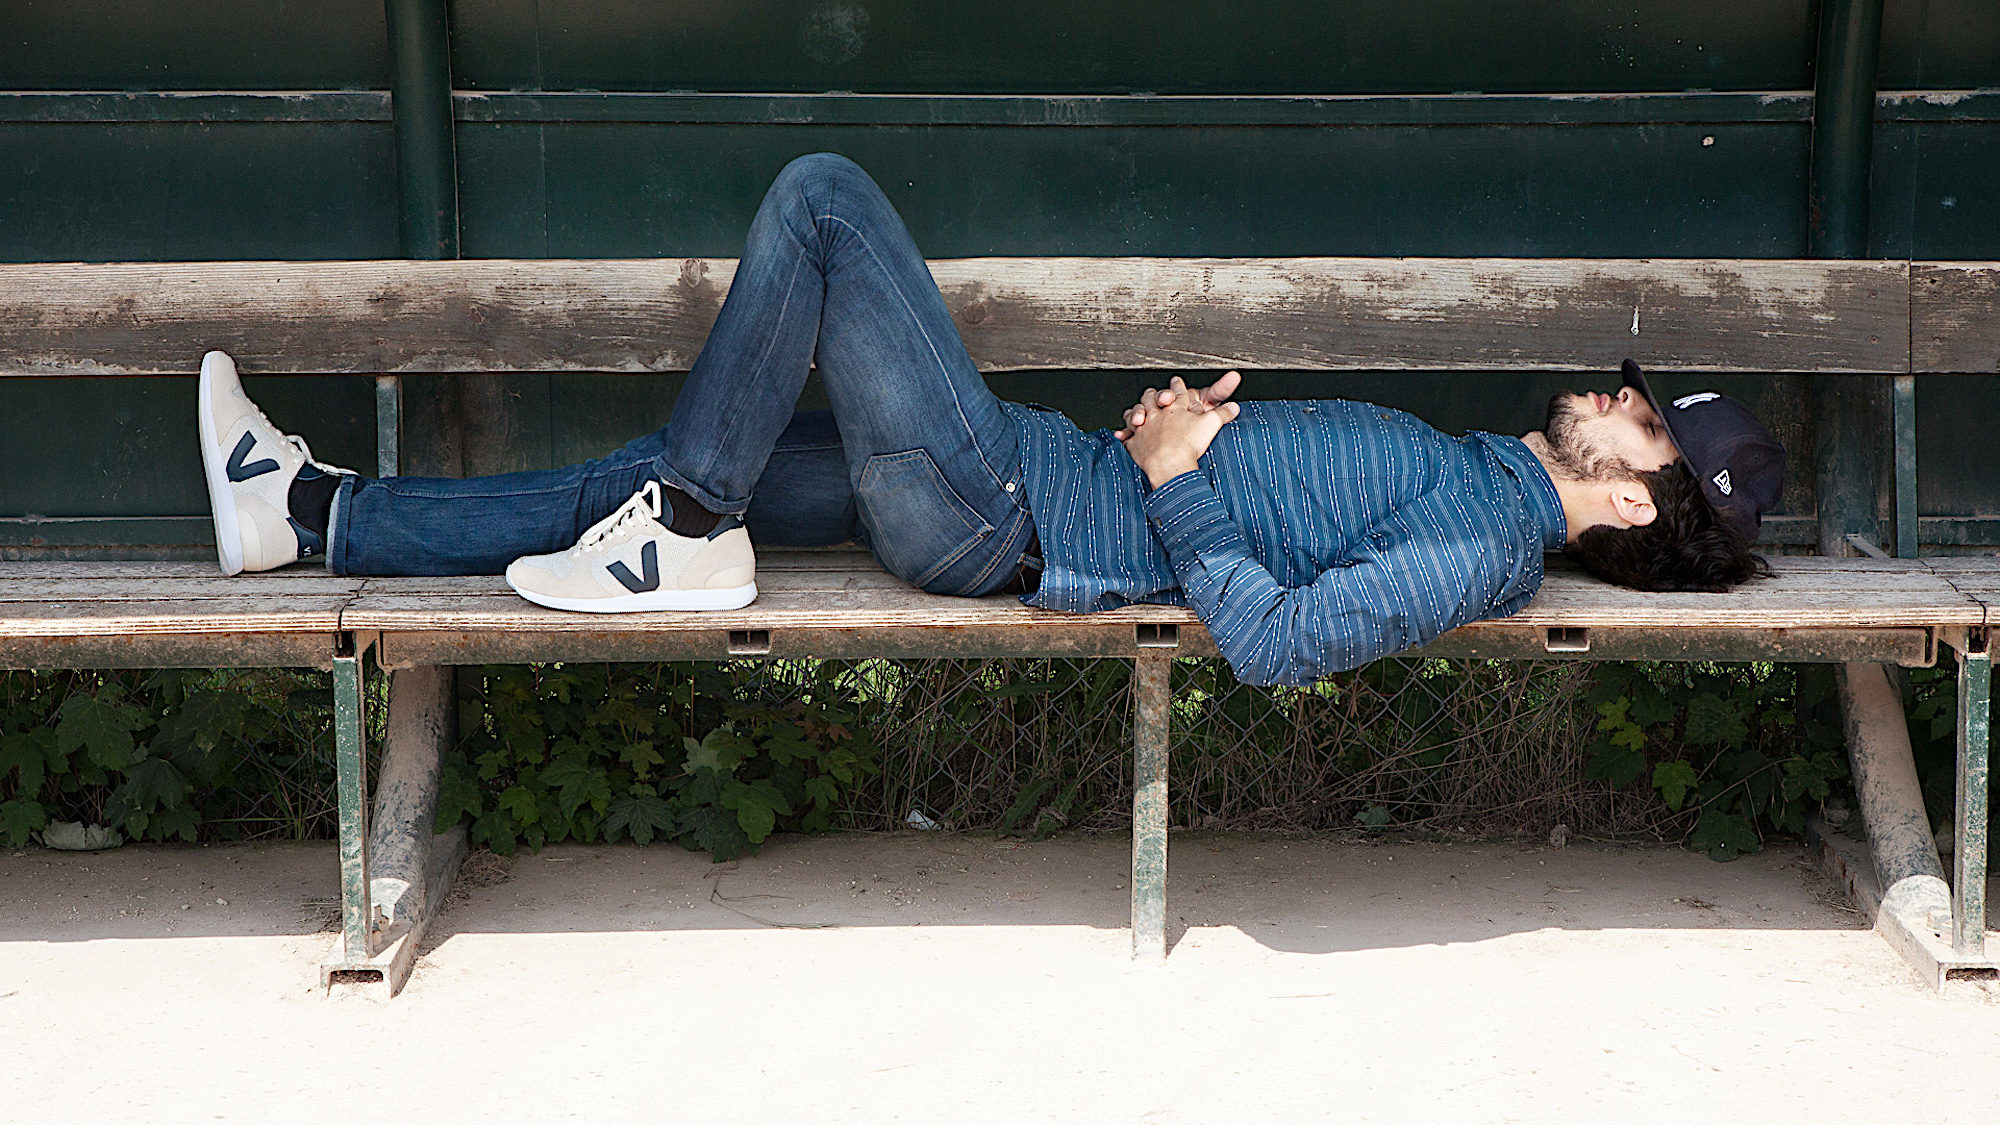 Sustainably made Veja trainers are also go-tos for Parisian men, like this young man wearing jeans and blue shirt, lying on a bench sleeping.